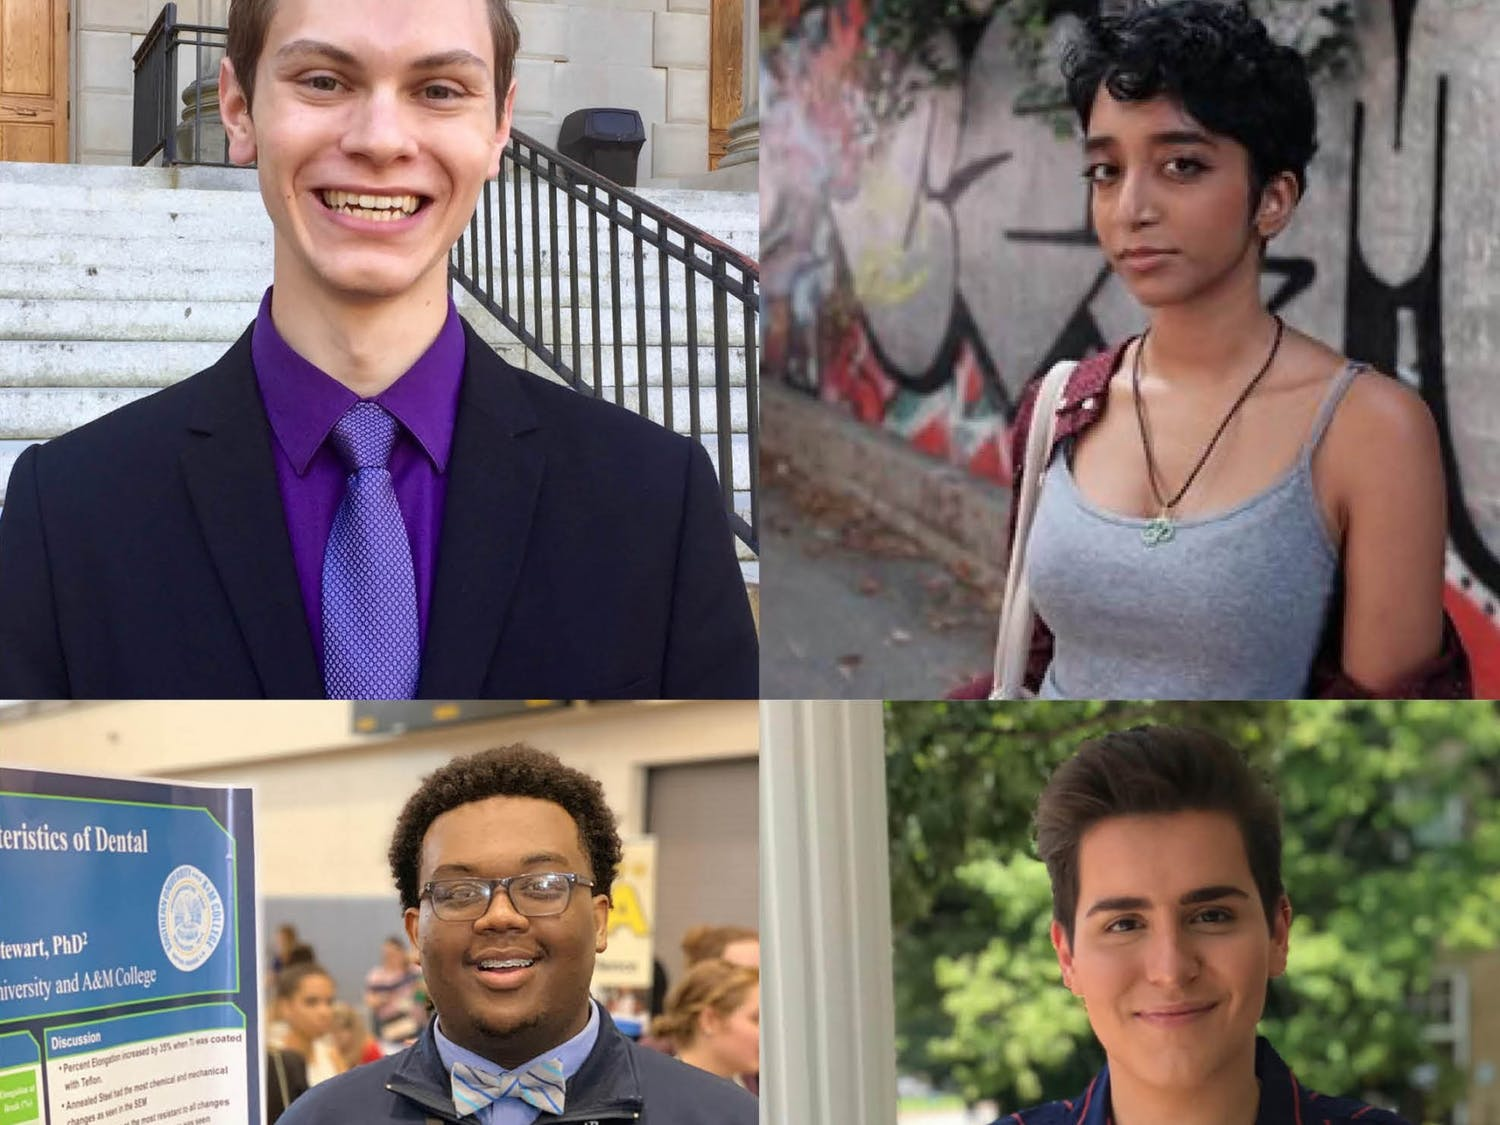 (Clockwise from top left) Daniel Bowen (senior), Veda Patil (senior), Collyn Smith (junior) and Lamar Richards (sophomore) speak up about UNC's sudden and drastic switch to remote classes just a week after reopening. Photos courtesy of Daniel Bowen, Veda Patil, Collyn Smith, and Lamar Richards.